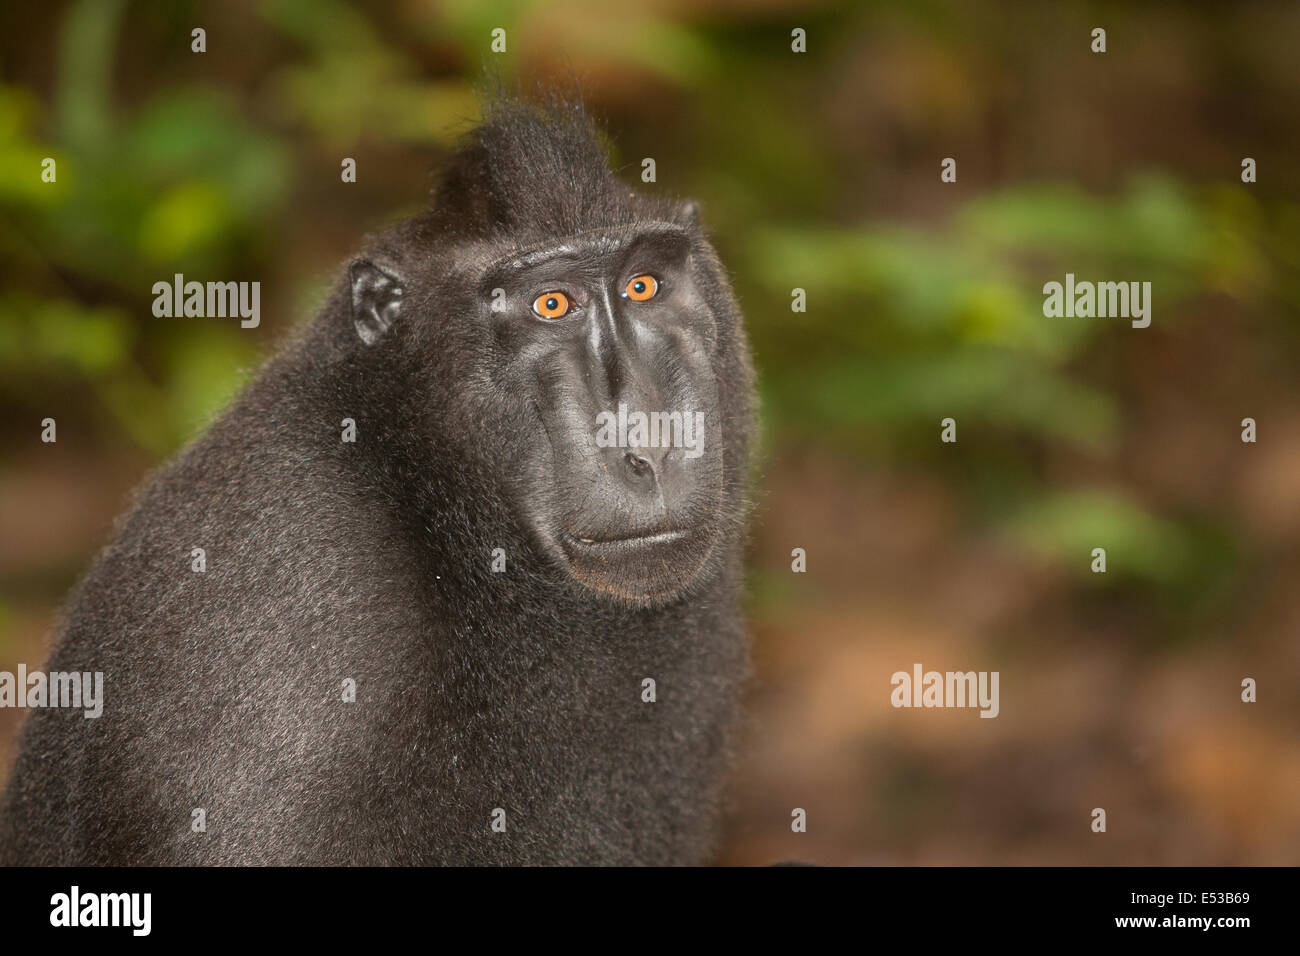 black crested macaque - Stock Image